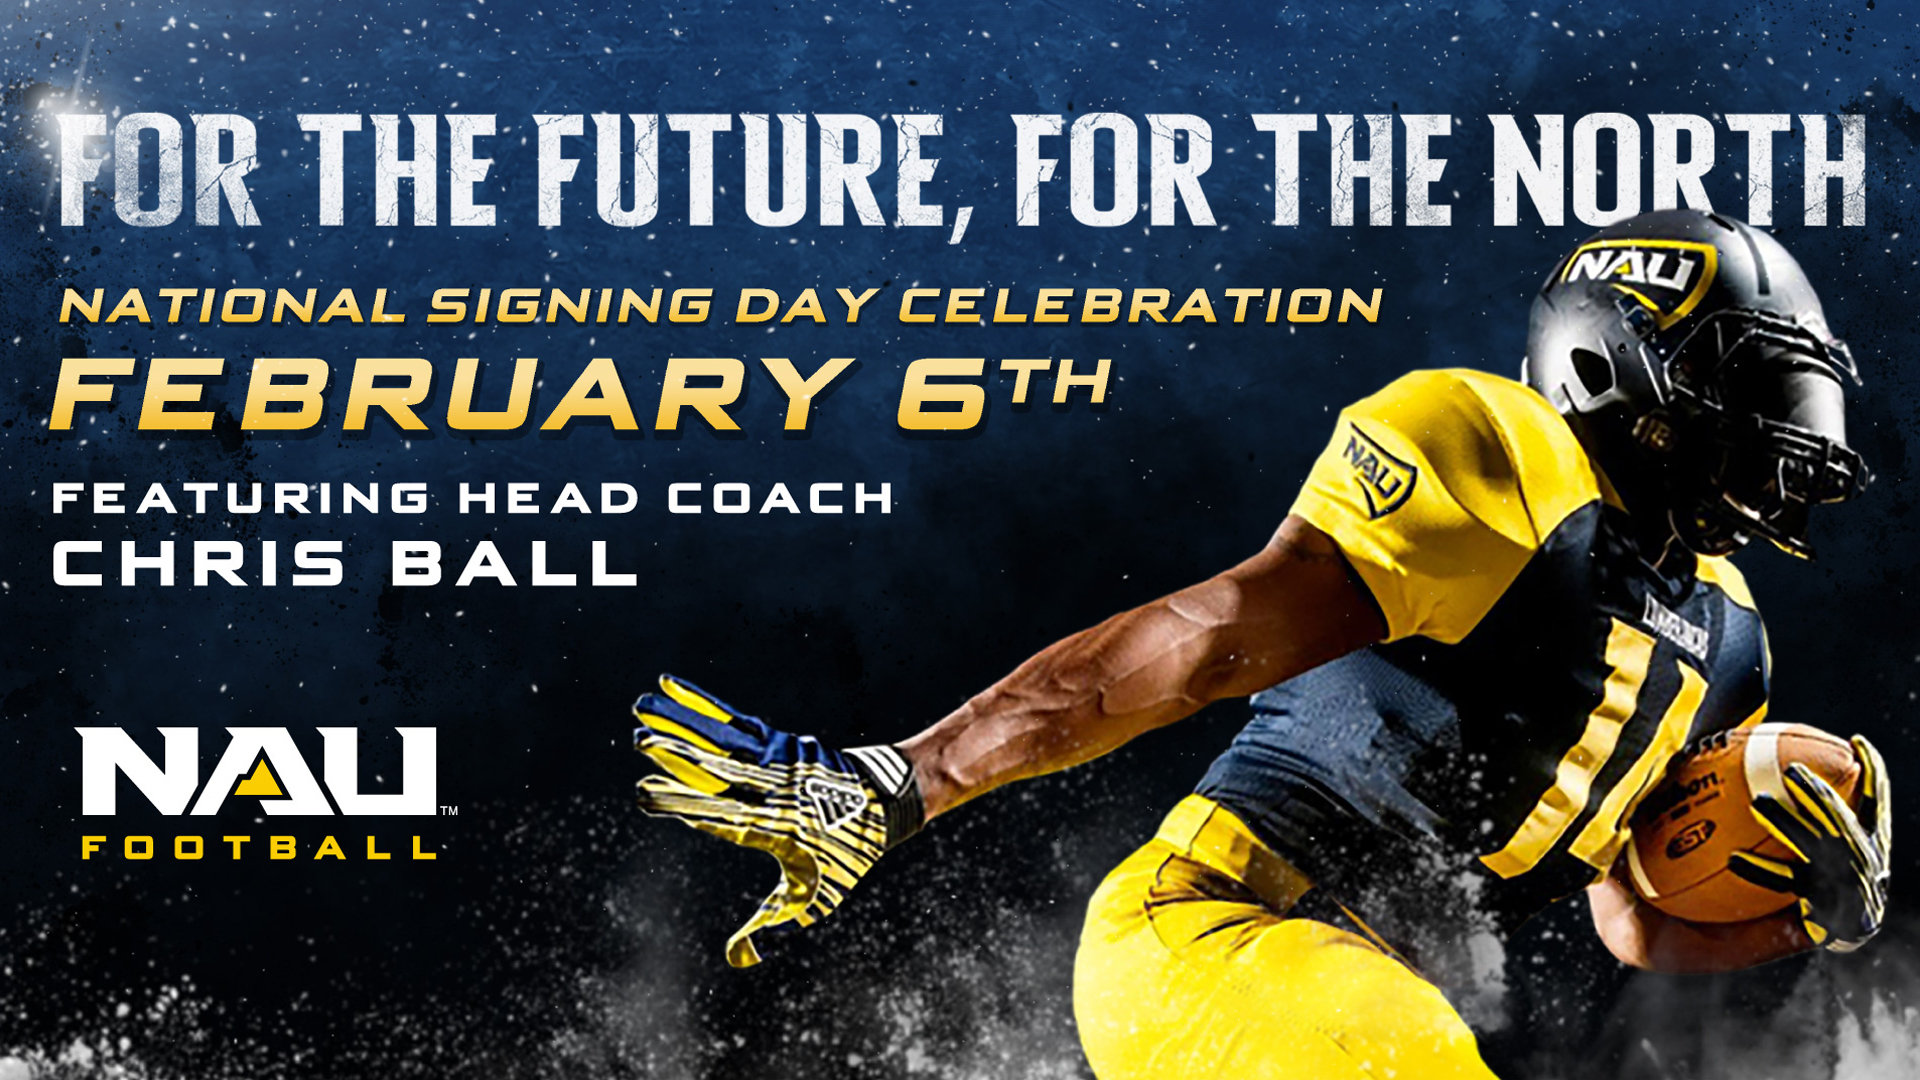 Nau Football National Signing Day Celebration Event To Be Held On